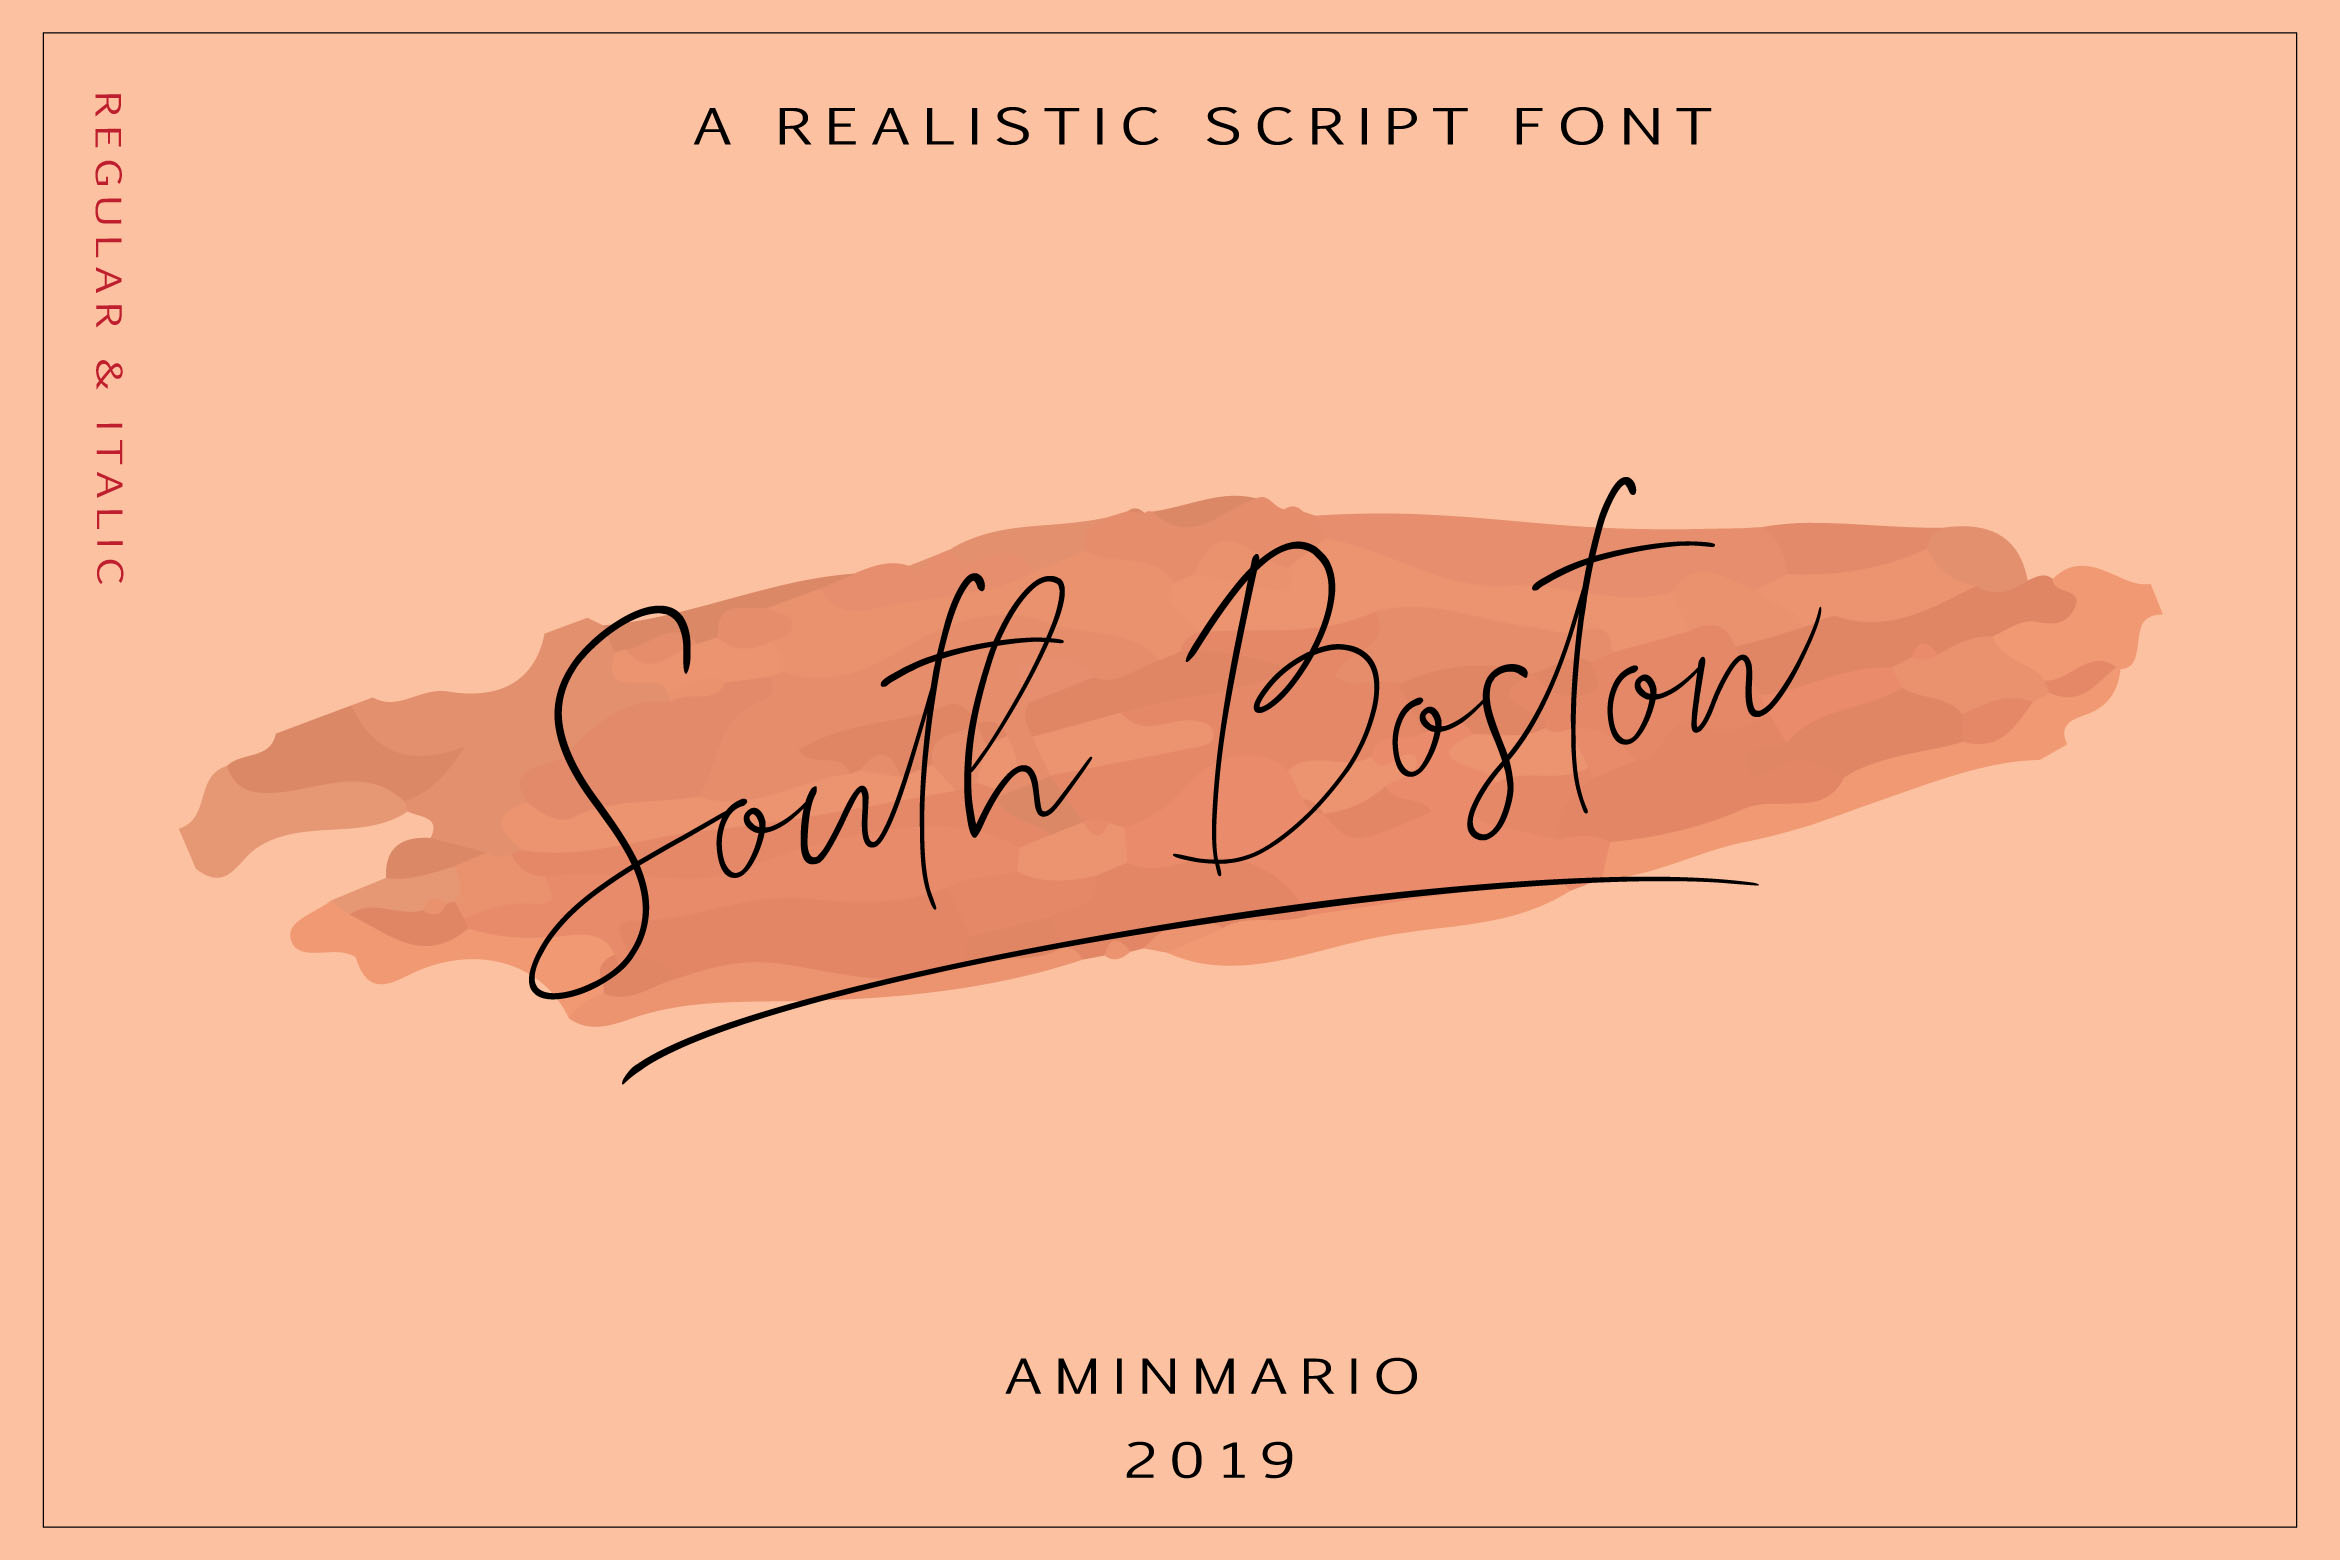 SOUTH BOSTON | REALISTIC SCRIPT example image 1